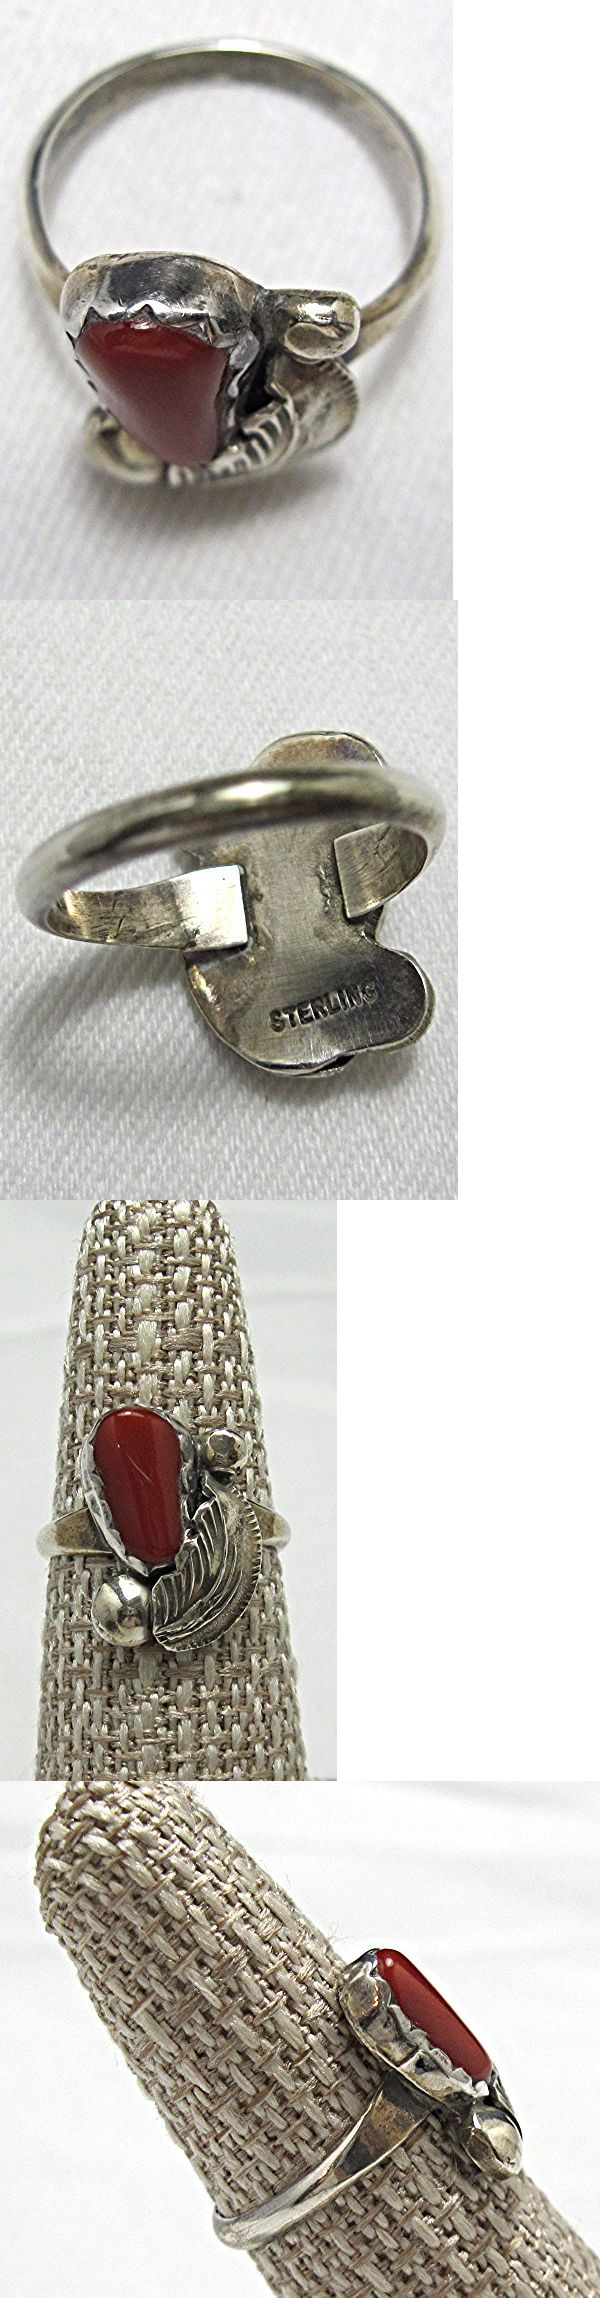 Native American pre-1935 165137: Estate Vintage Carmelita Simplicio Zuni Sterling Red Coral Ring Sz 6 1 2 Be330 -> BUY IT NOW ONLY: $59 on eBay!